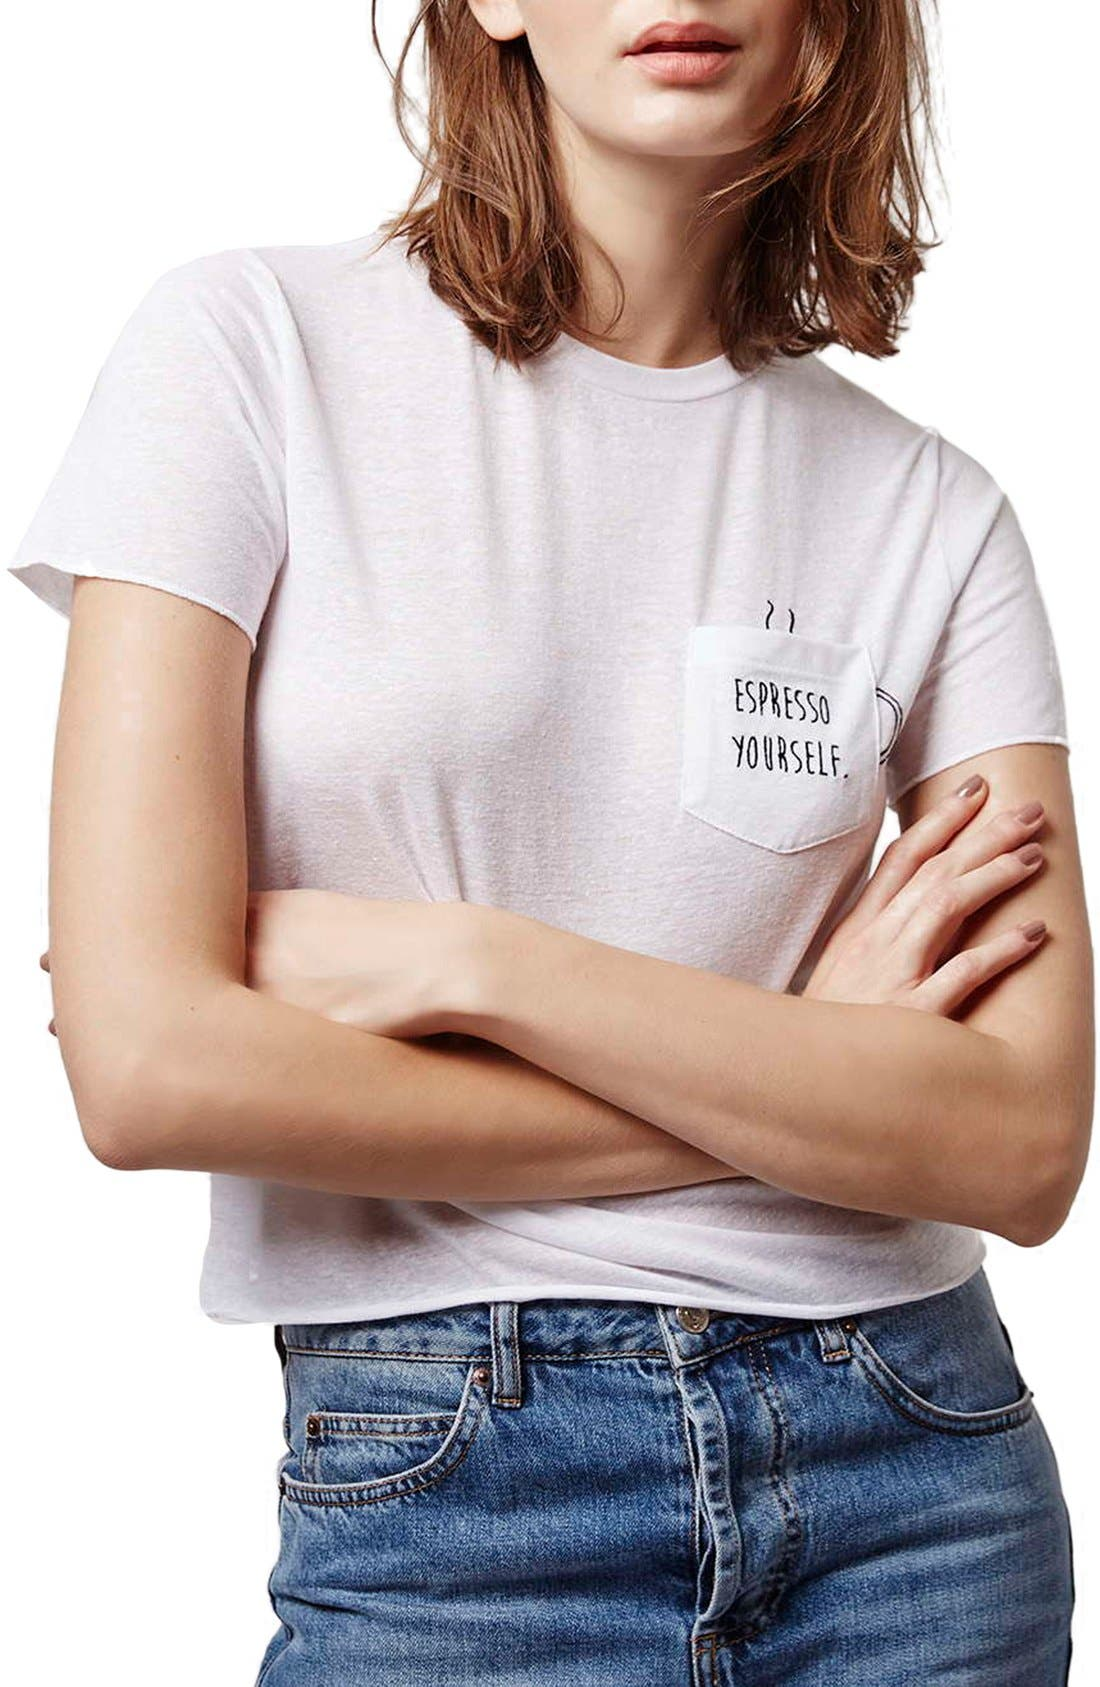 'Espresso Yourself' Pocket Tee,                             Main thumbnail 1, color,                             100